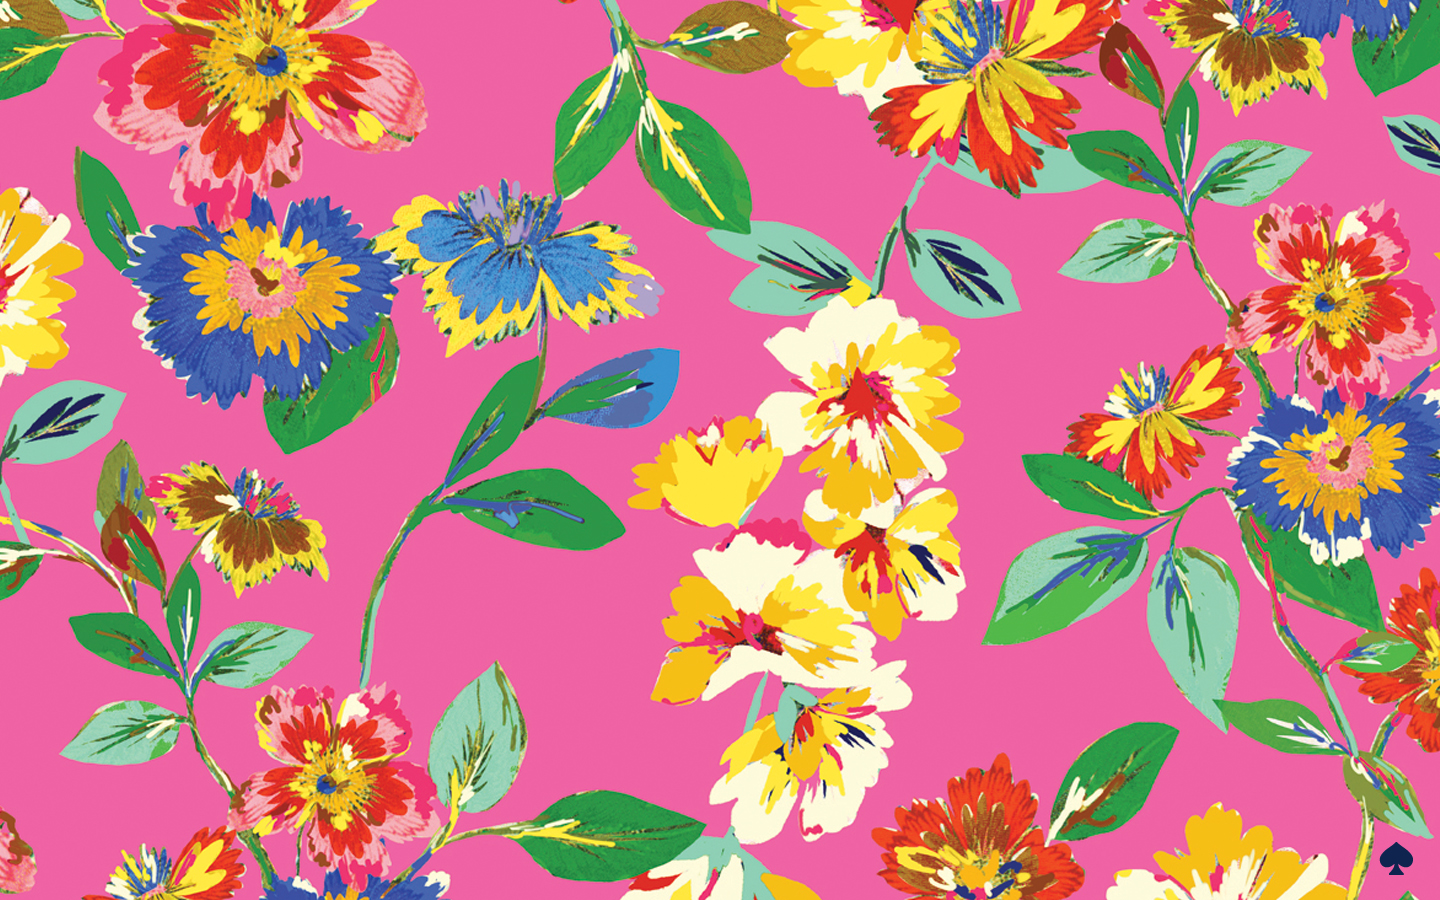 Free download Kate Spade Backgrounds